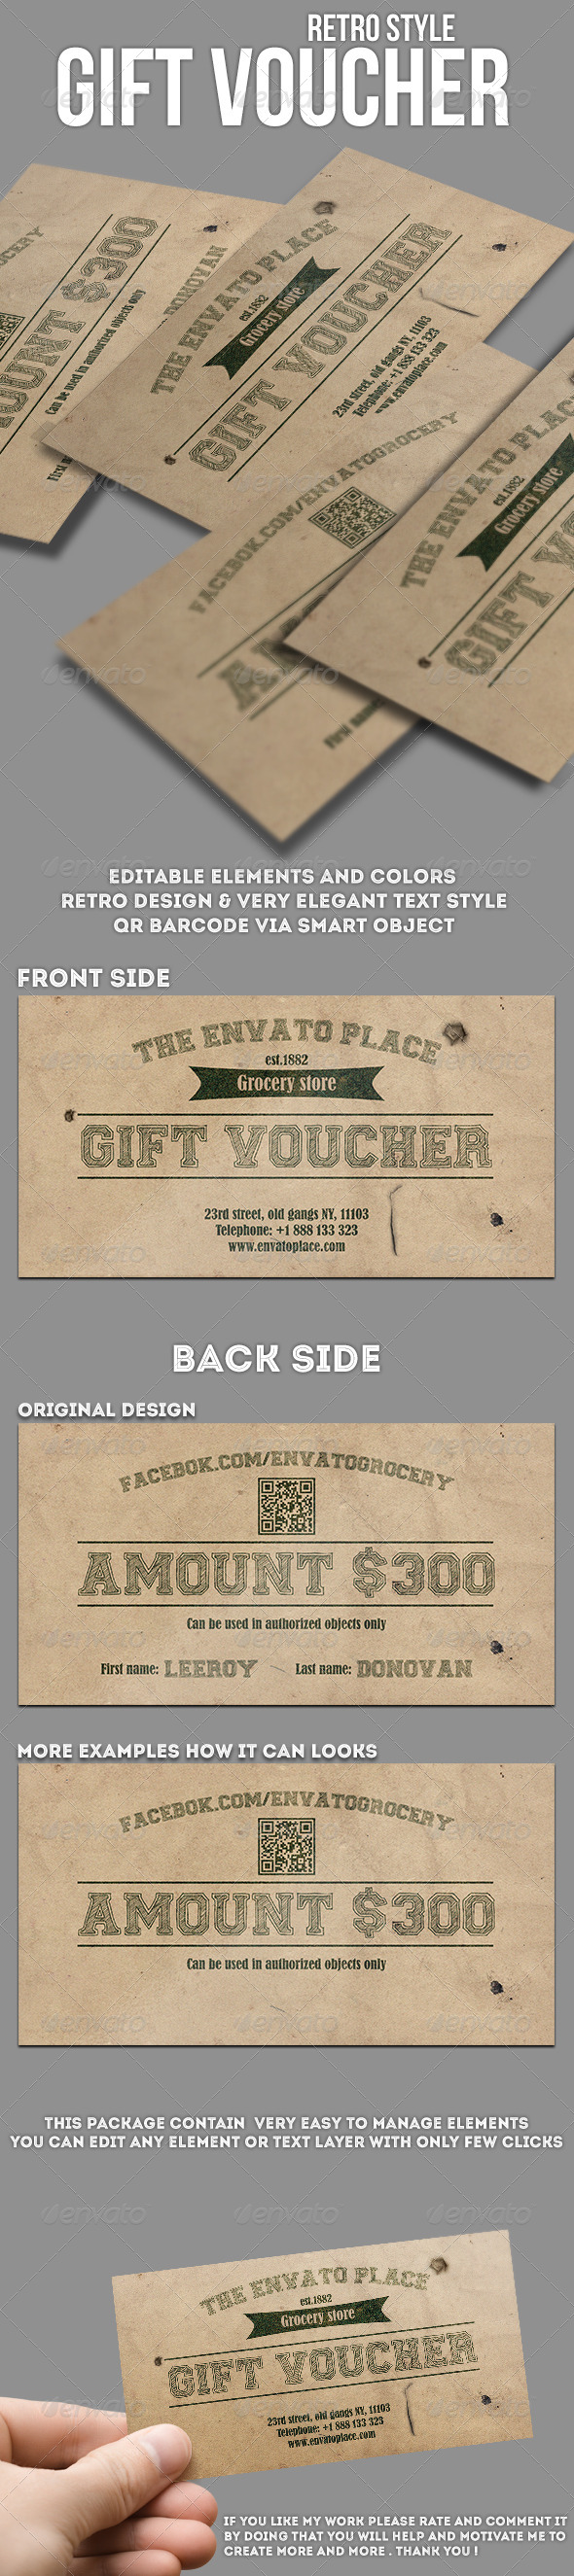 Grocery retro style gift voucher